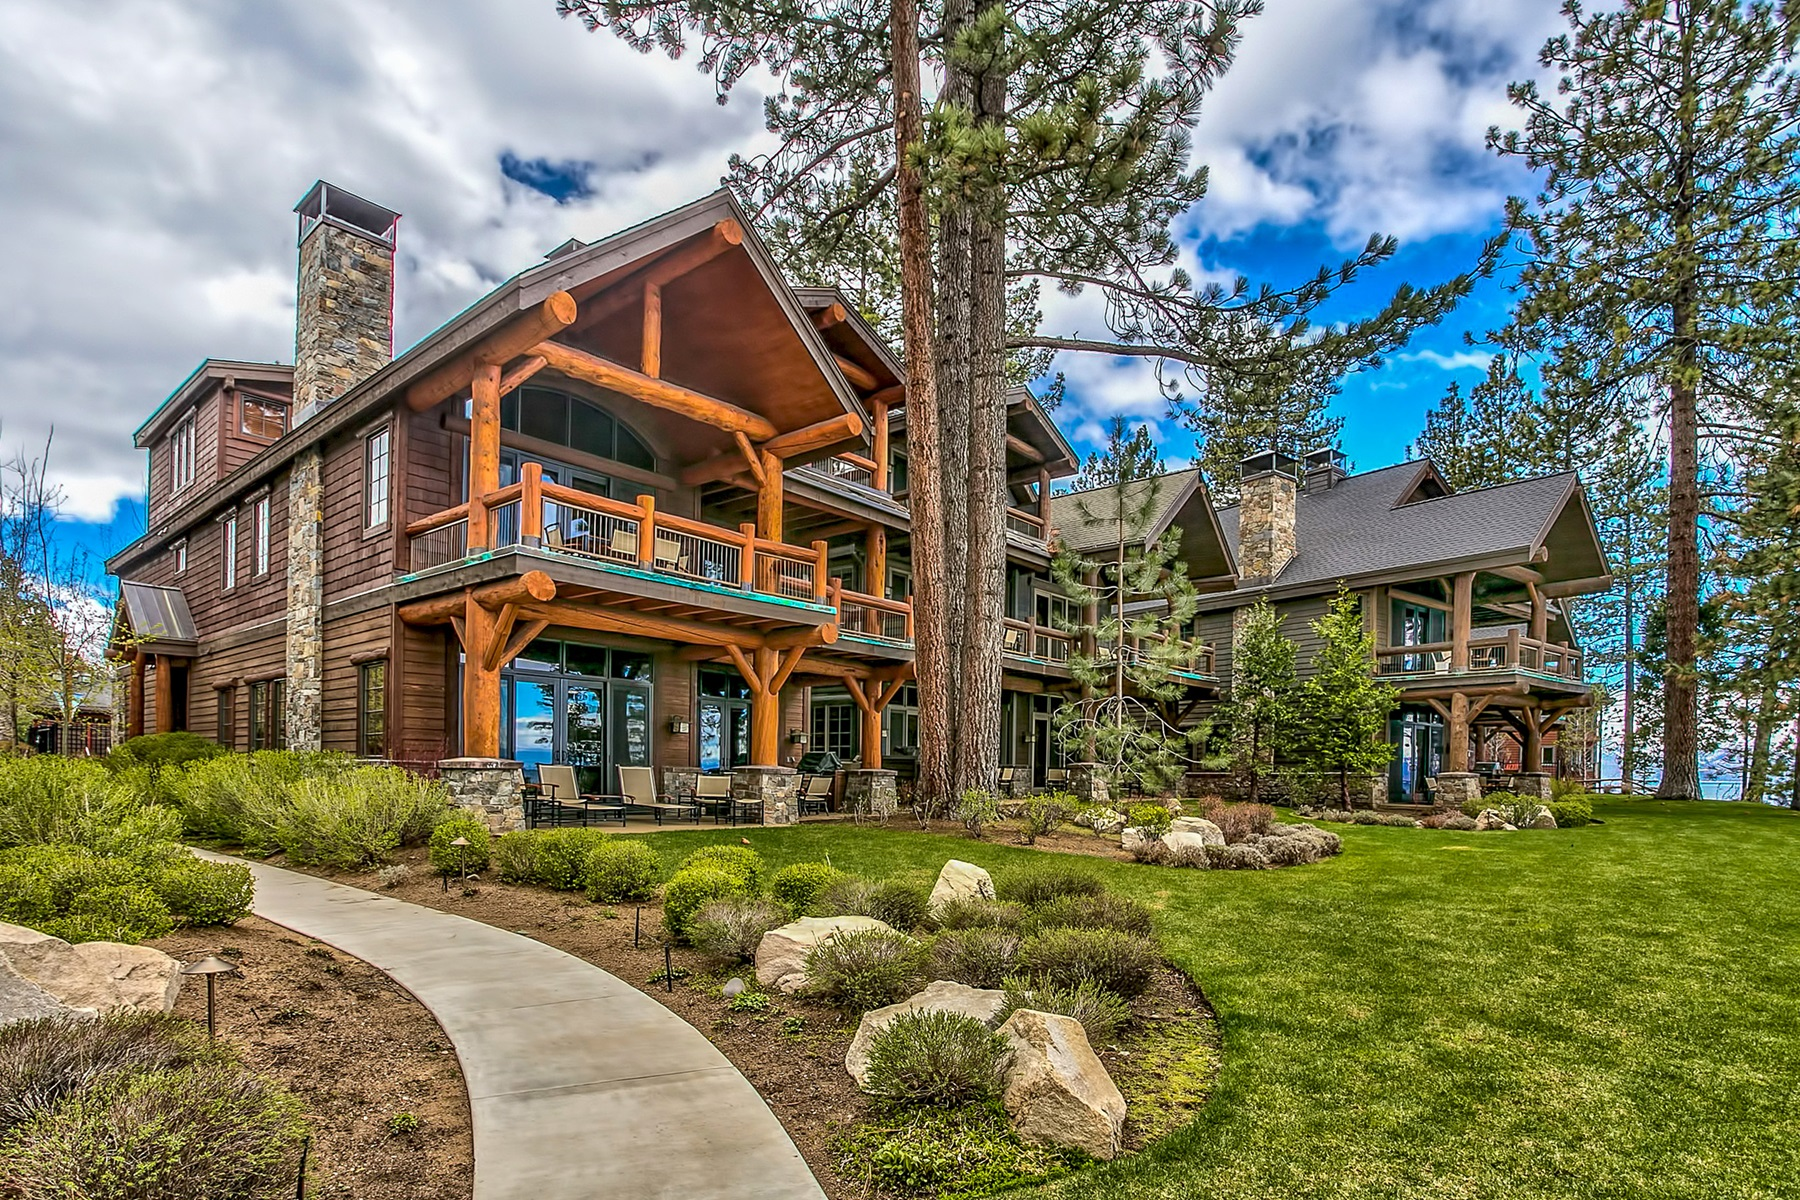 Single Family Home for Sale at Sierra Shores 3371 Lake Tahoe Blvd #8 South Lake Tahoe, California, 96150 Lake Tahoe, United States